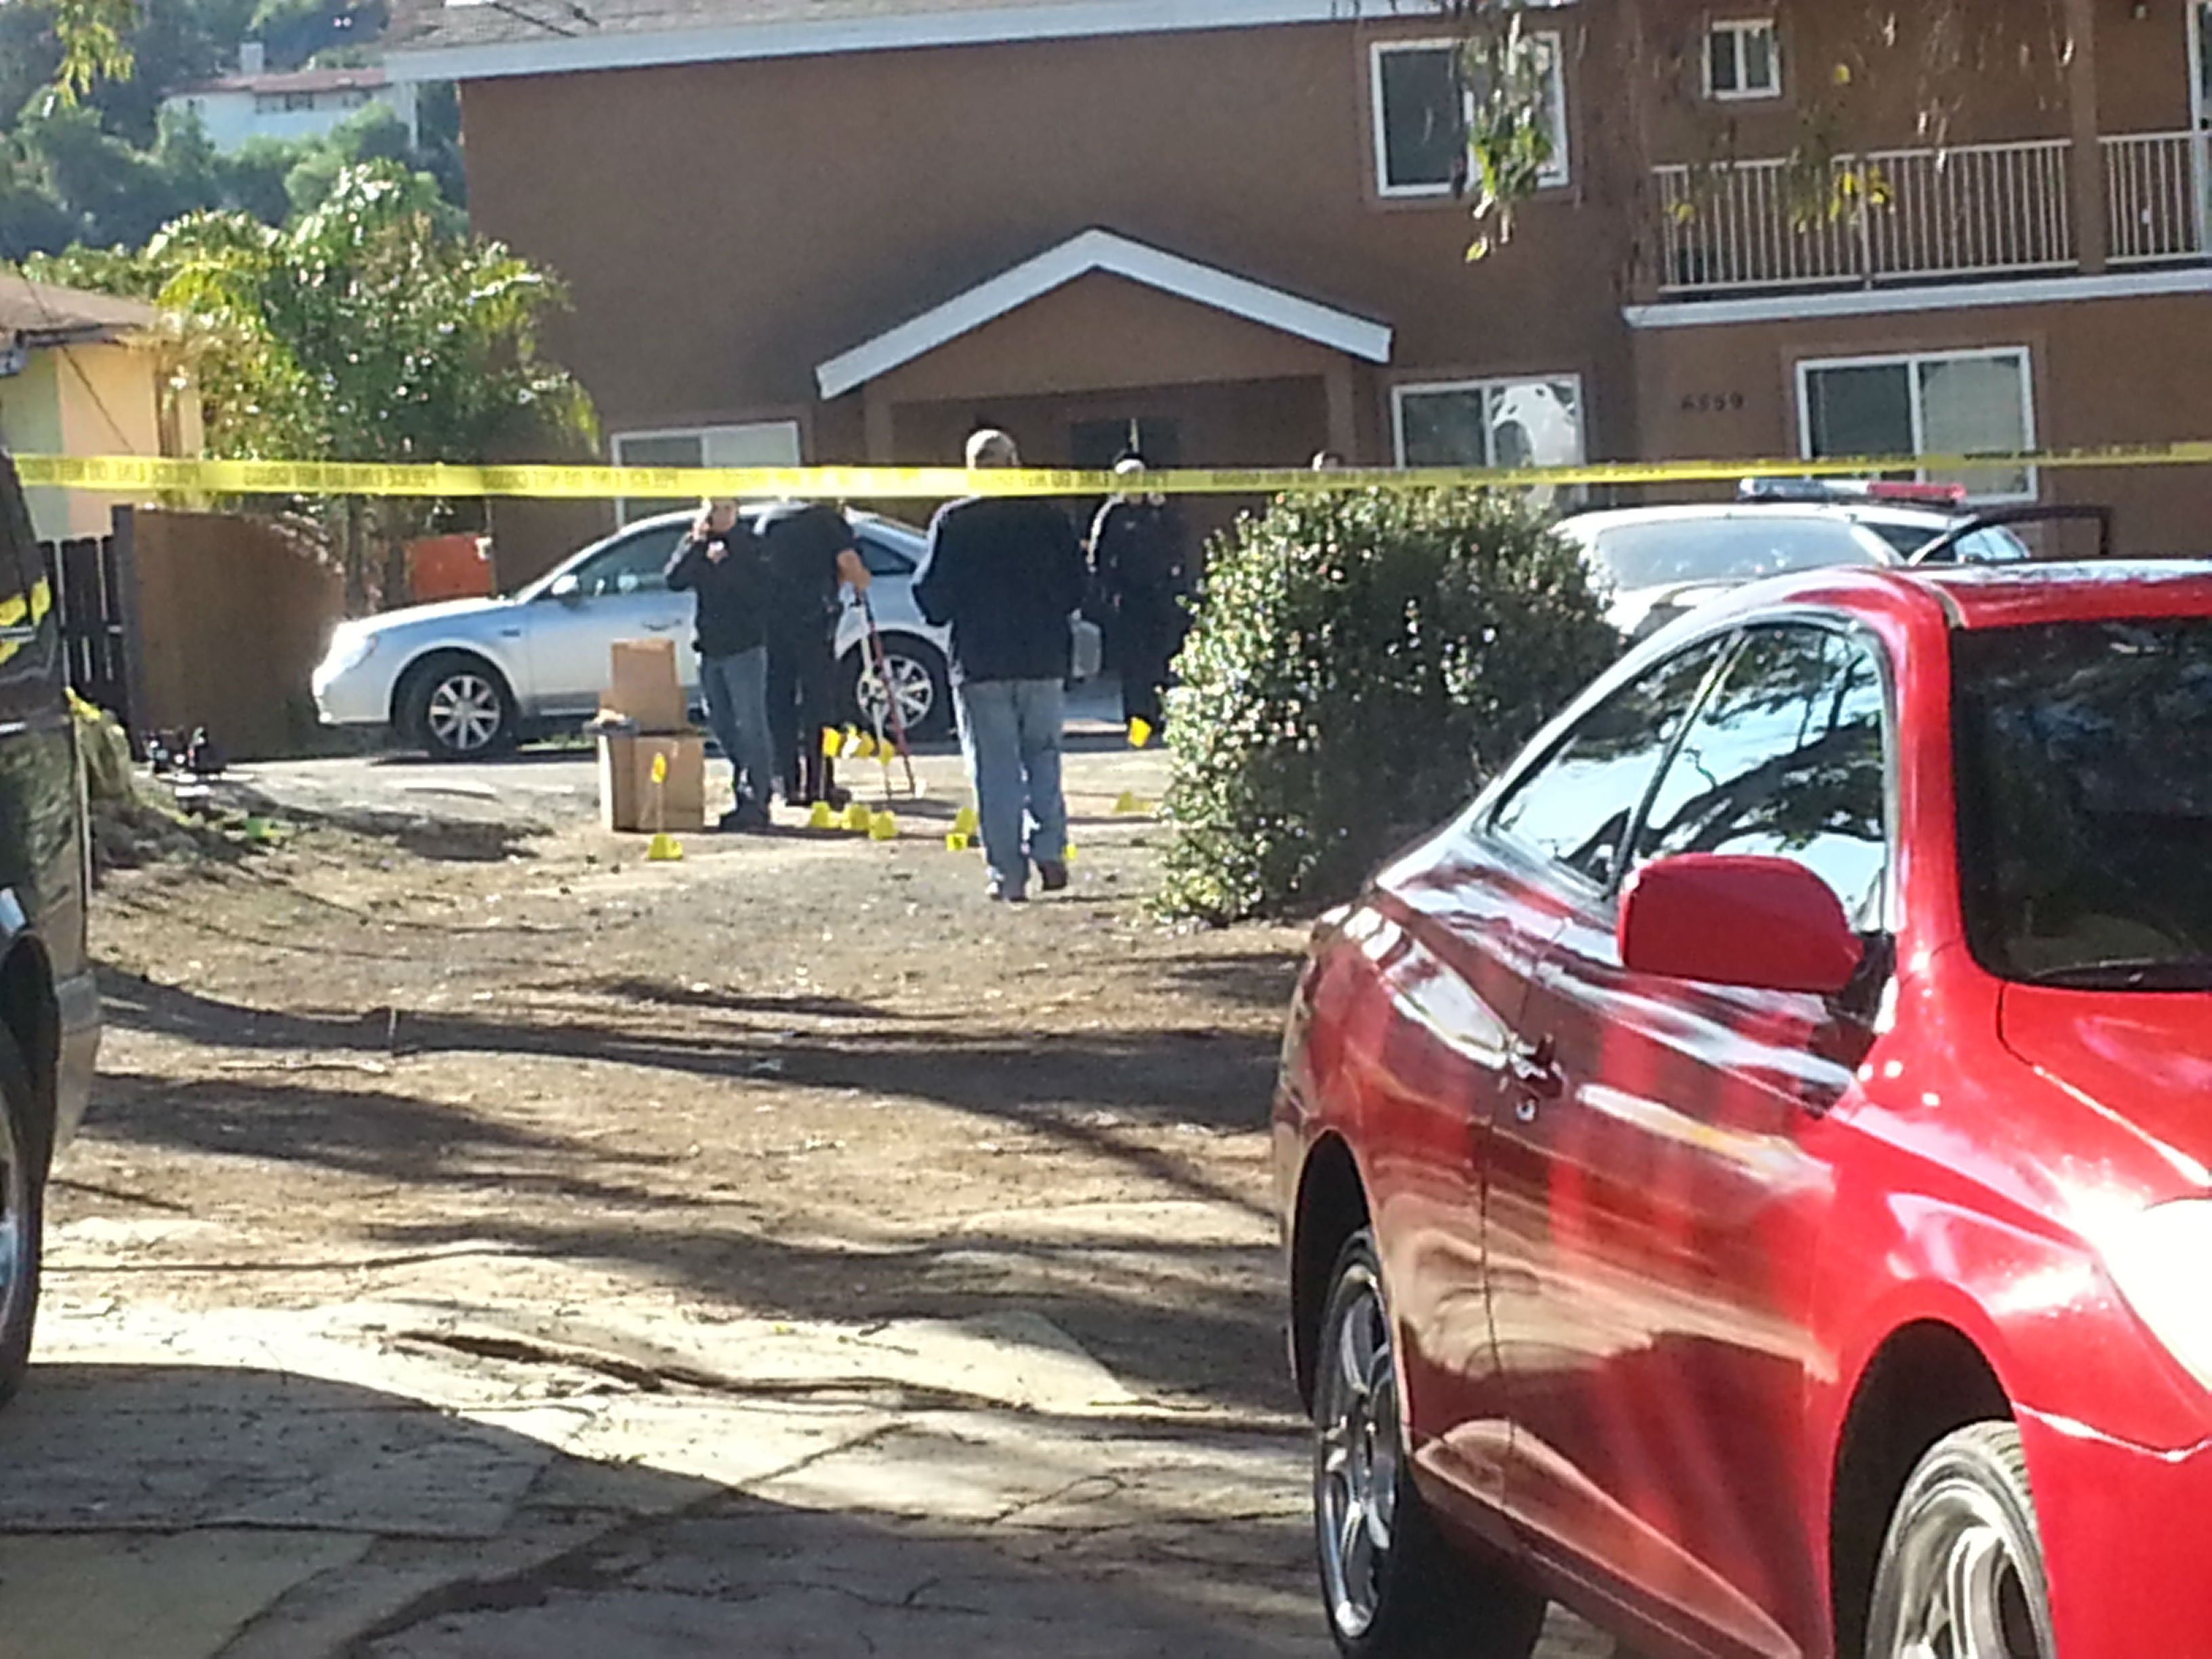 Police investigate an officer-involved shooting in Encanto, photo courtesy Alicia Quispe.